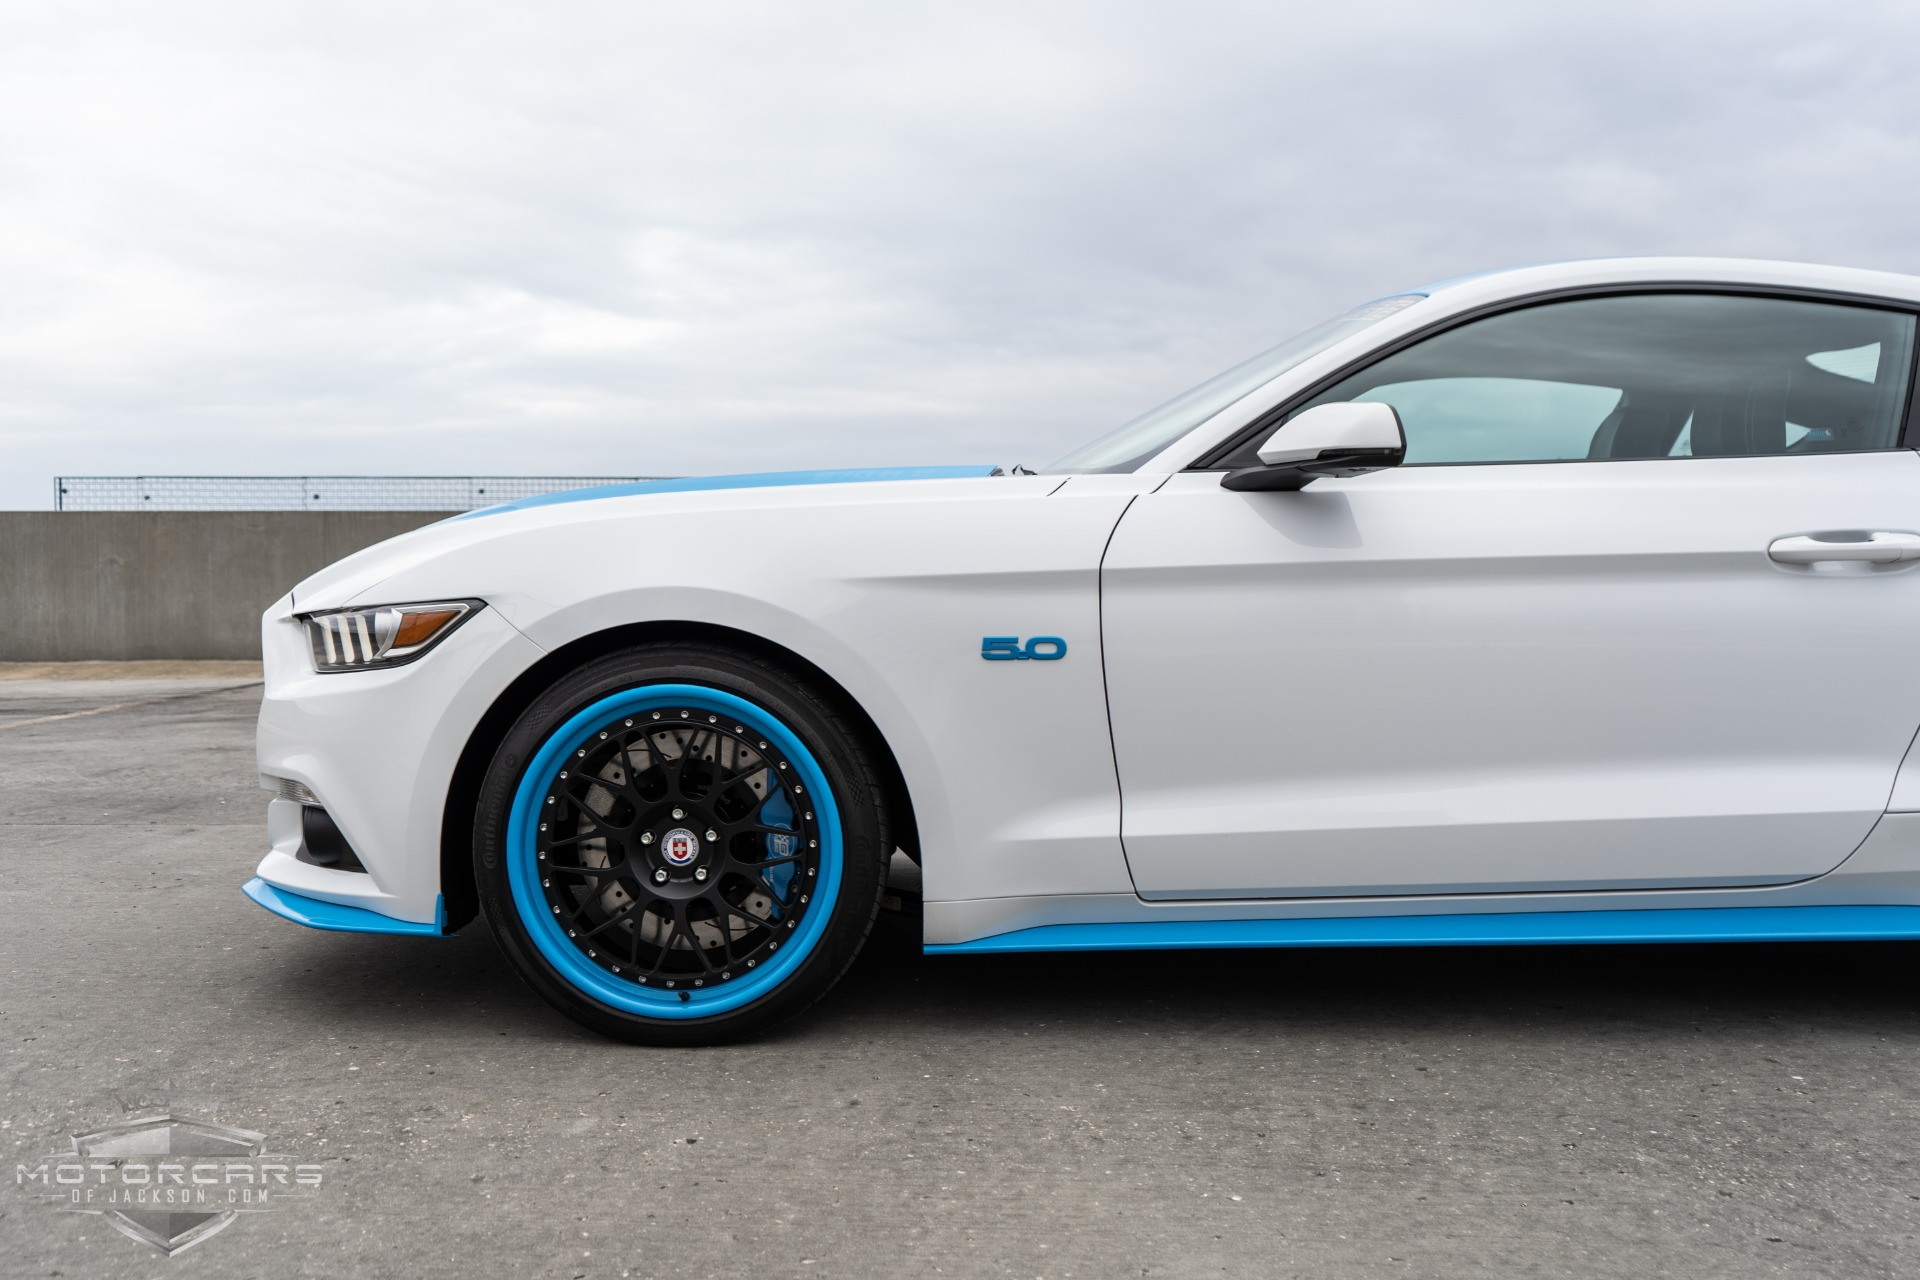 Used-2016-Ford-Mustang-King-Premier-Petty-Garage-Jackson-MS